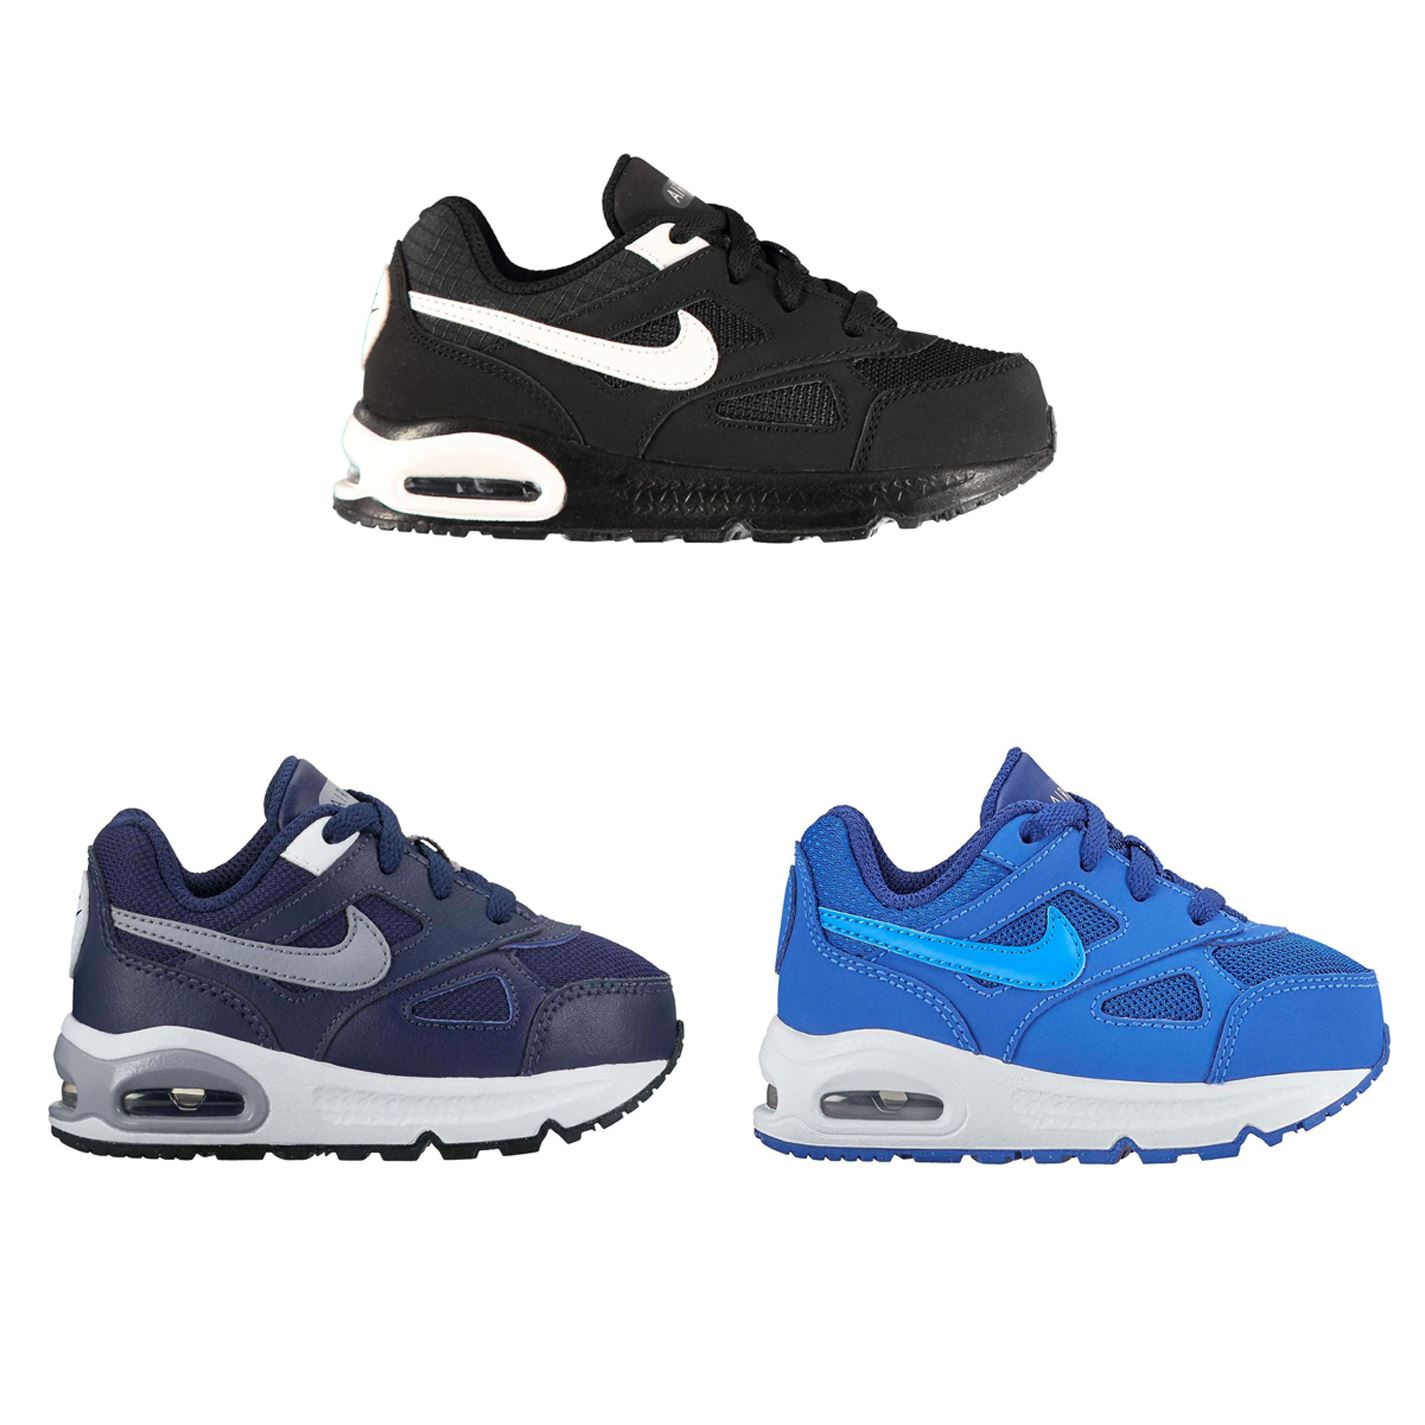 new york 941ae c9d2a Details about Nike Air Max Ivo Infant Boys Trainers Shoes Footwear